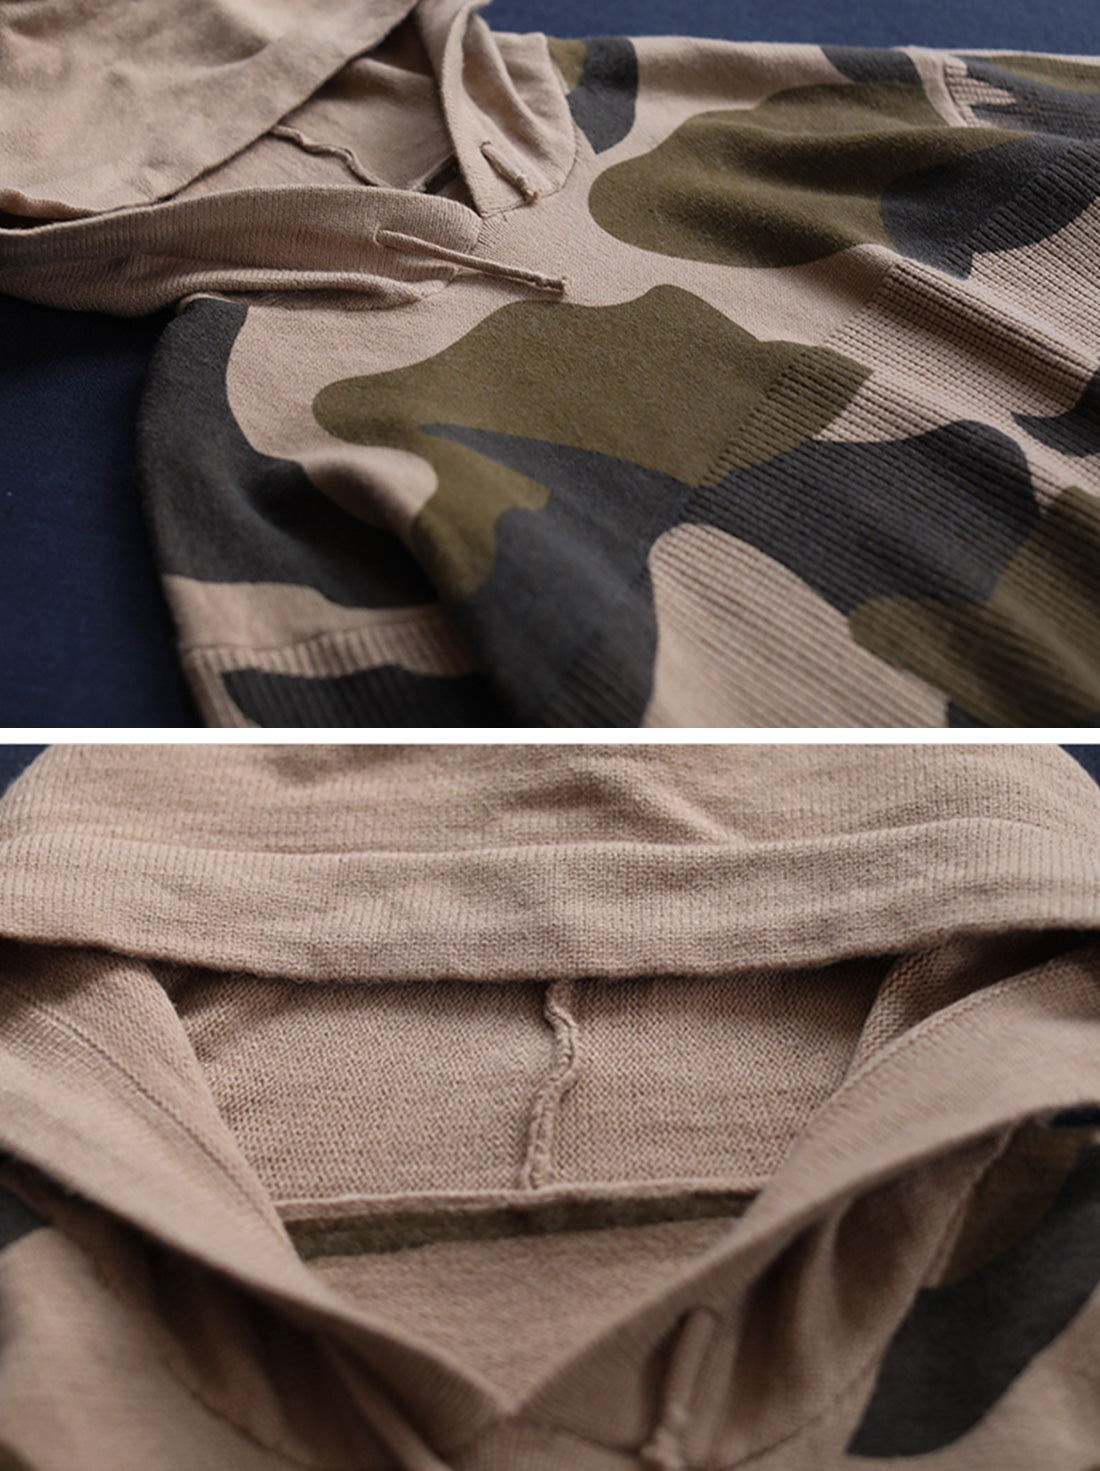 Wild Camouflage Hooded Sweater Details 1